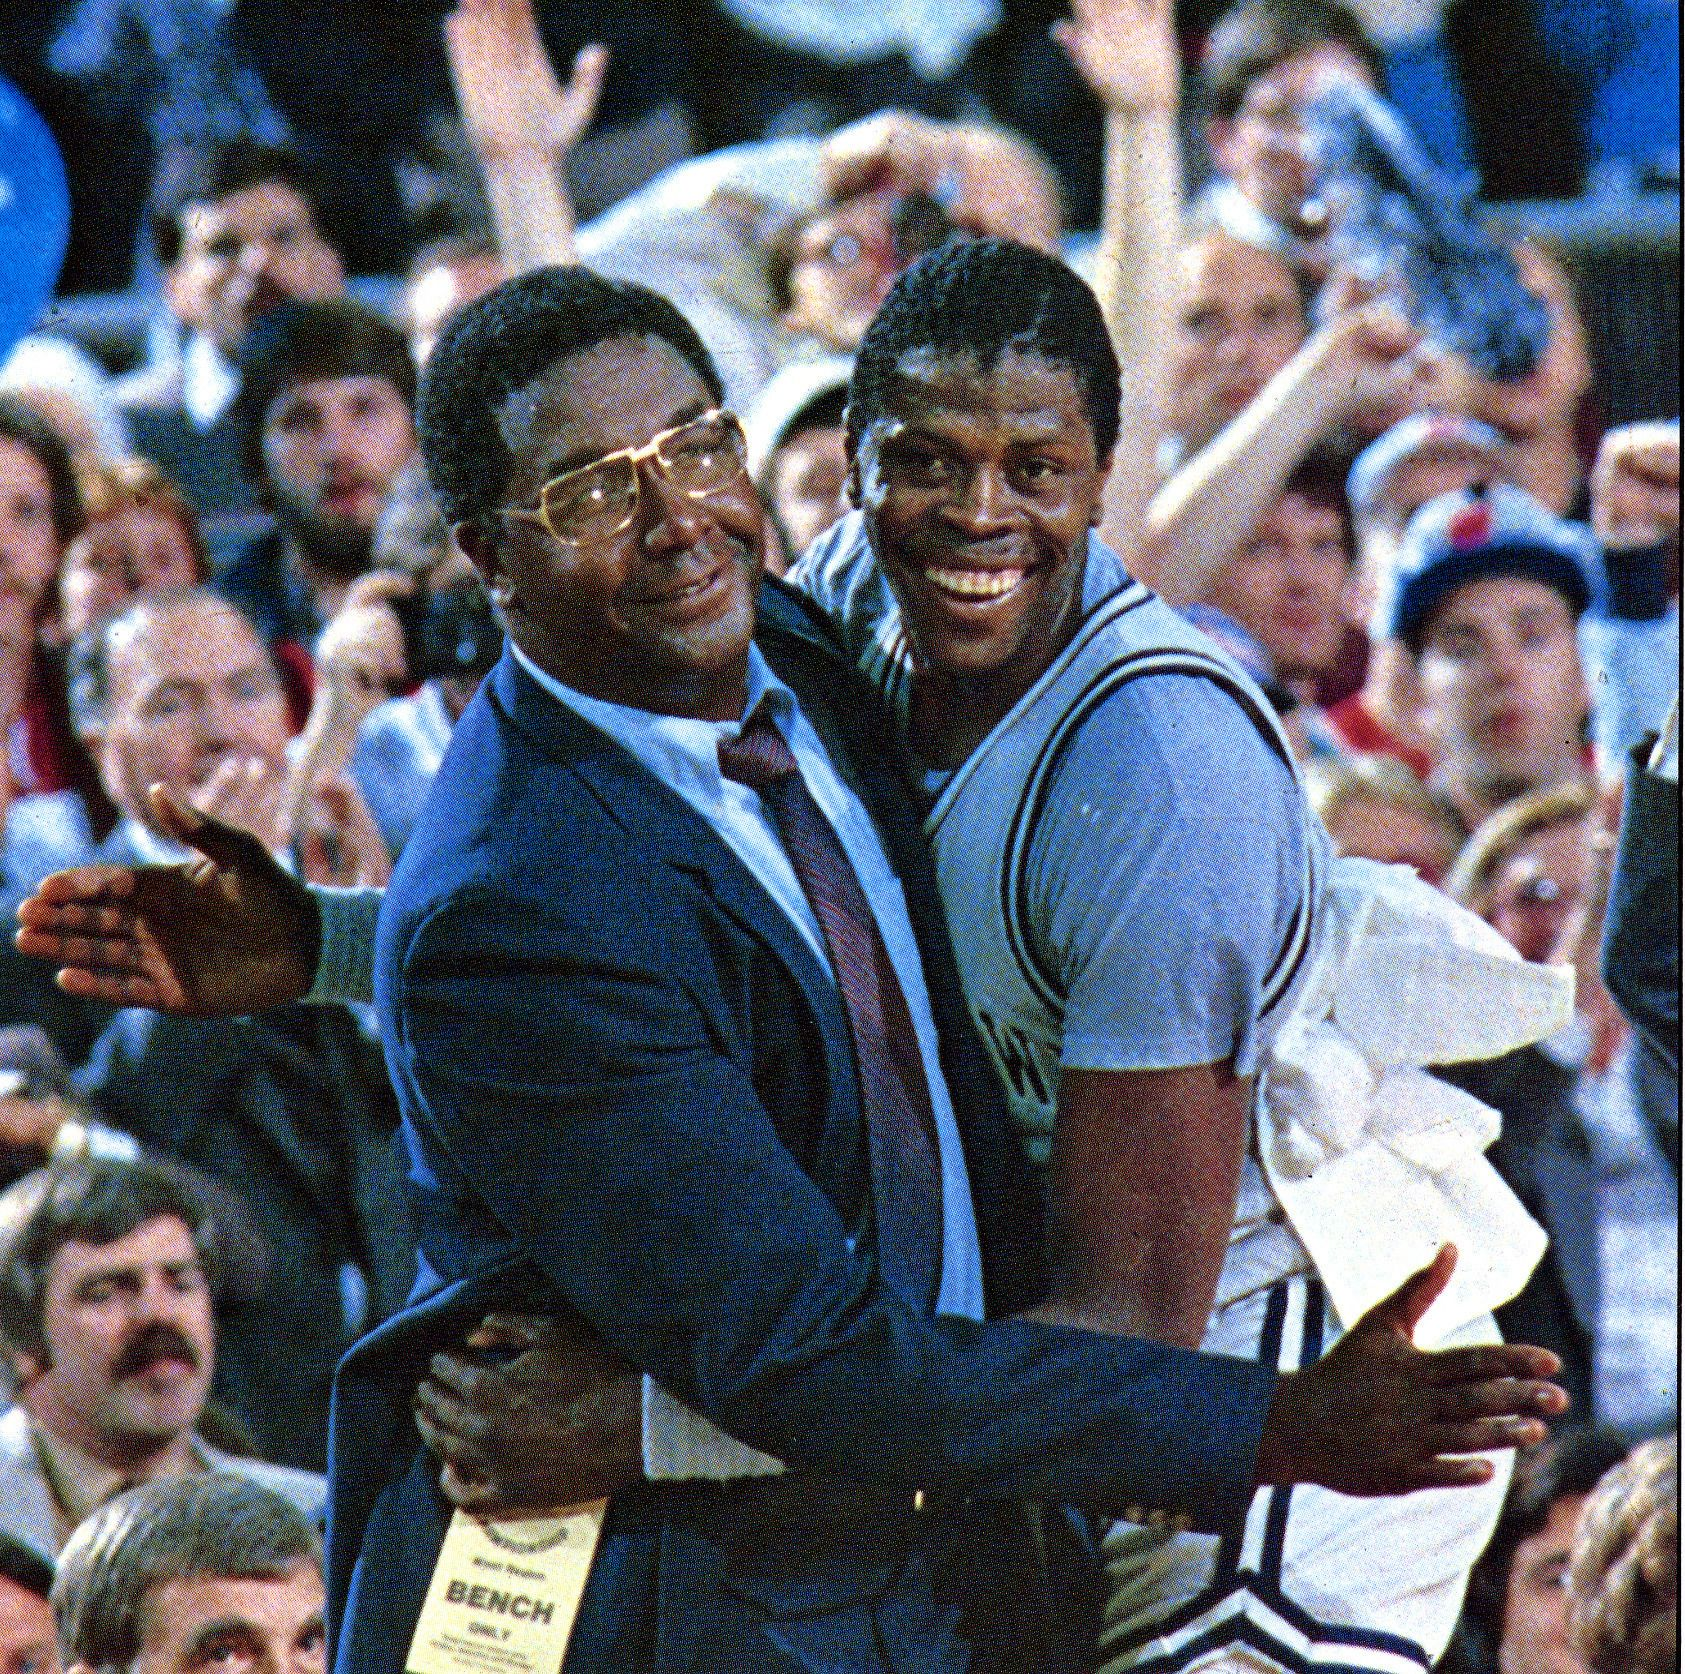 Patrick Ewing and late John Thompson pose for a photo during a game at McDonough Arena in Washington, D.C. | Photo: Getty Images.